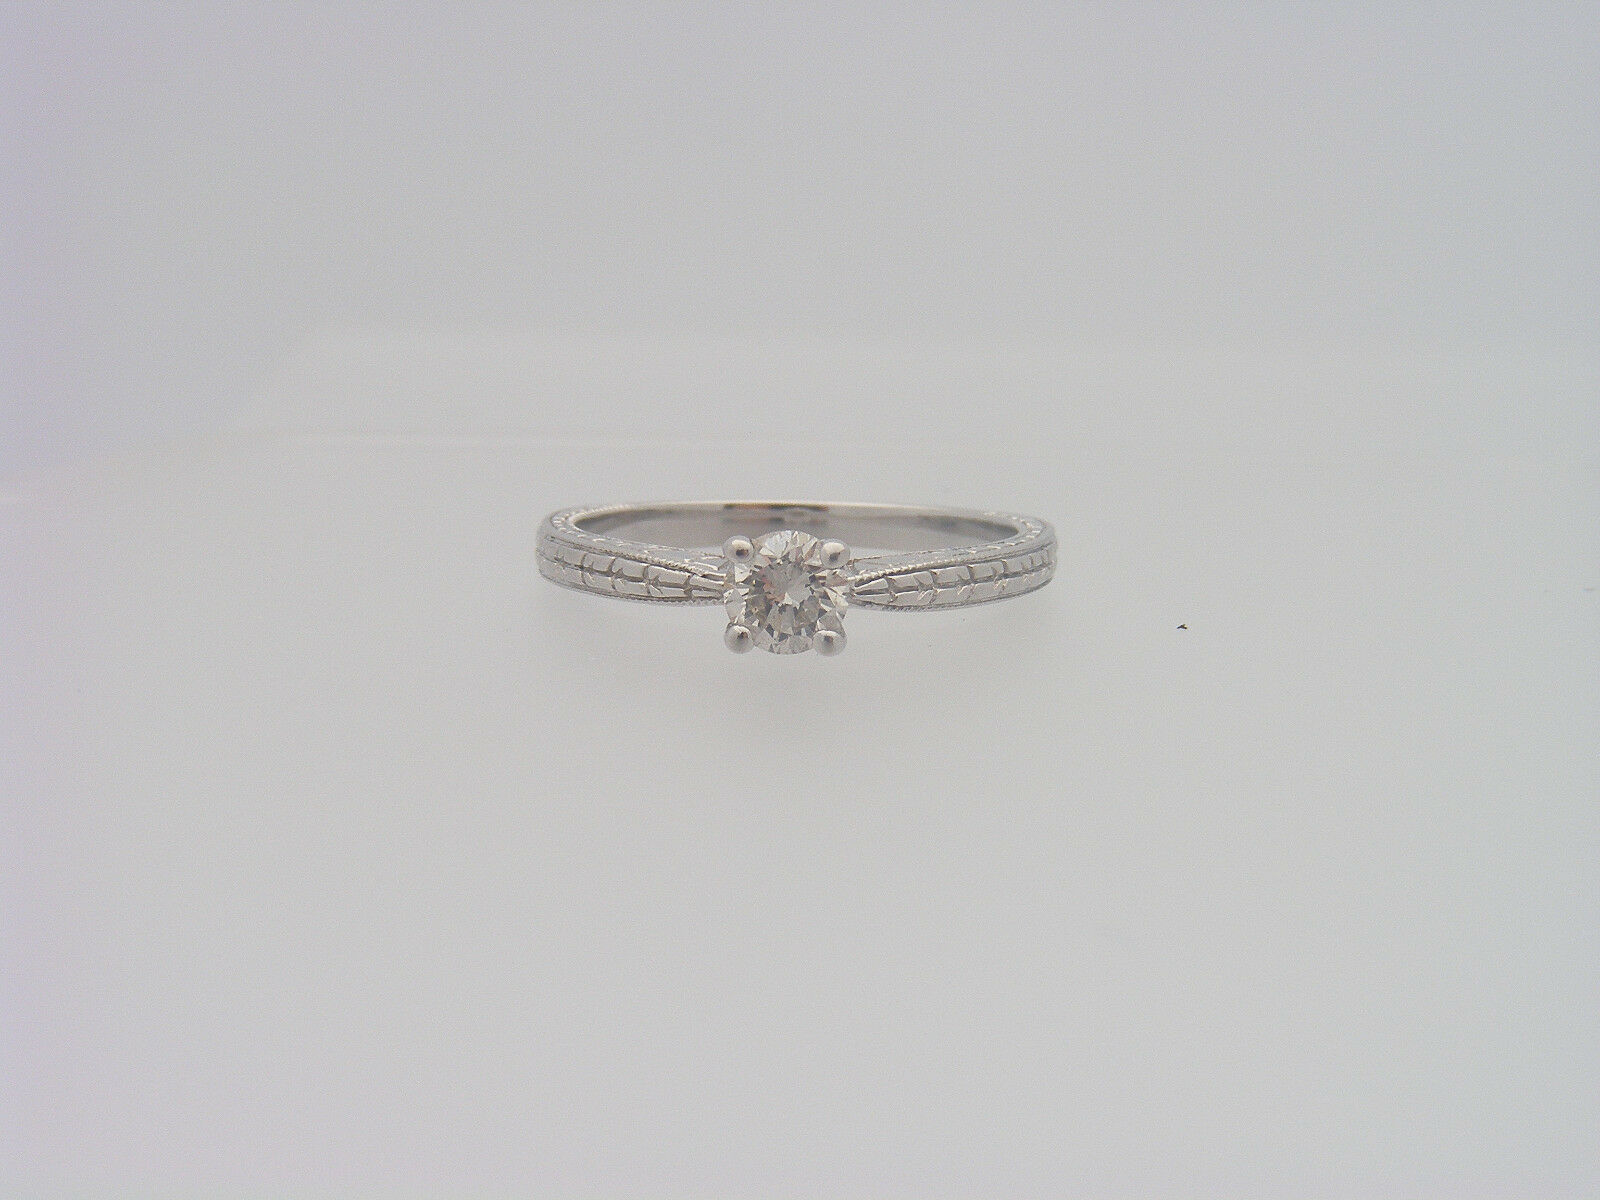 0.36 C.T.W. ROUND CUT DIAMOND VINTAGE MOUNTING SOLITAIRE ENGAGEMENT RING